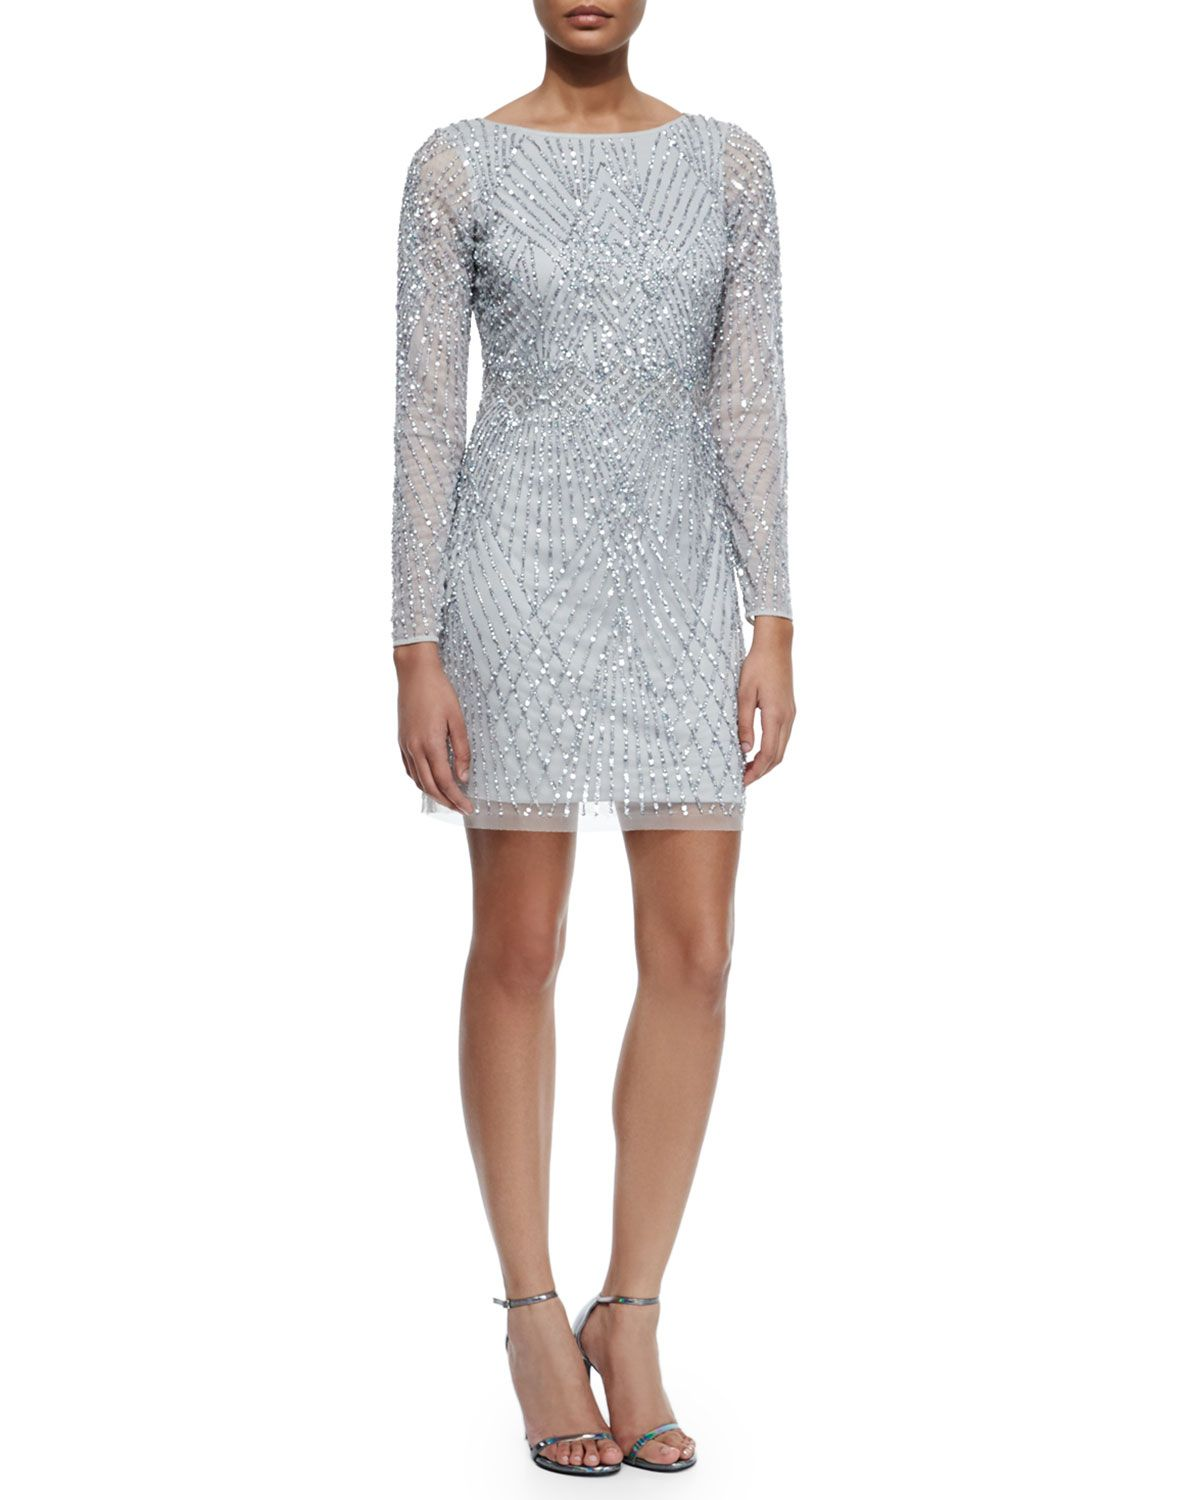 5f5d4f04024 Embellished Long-Sleeve Boatneck Cocktail Dress